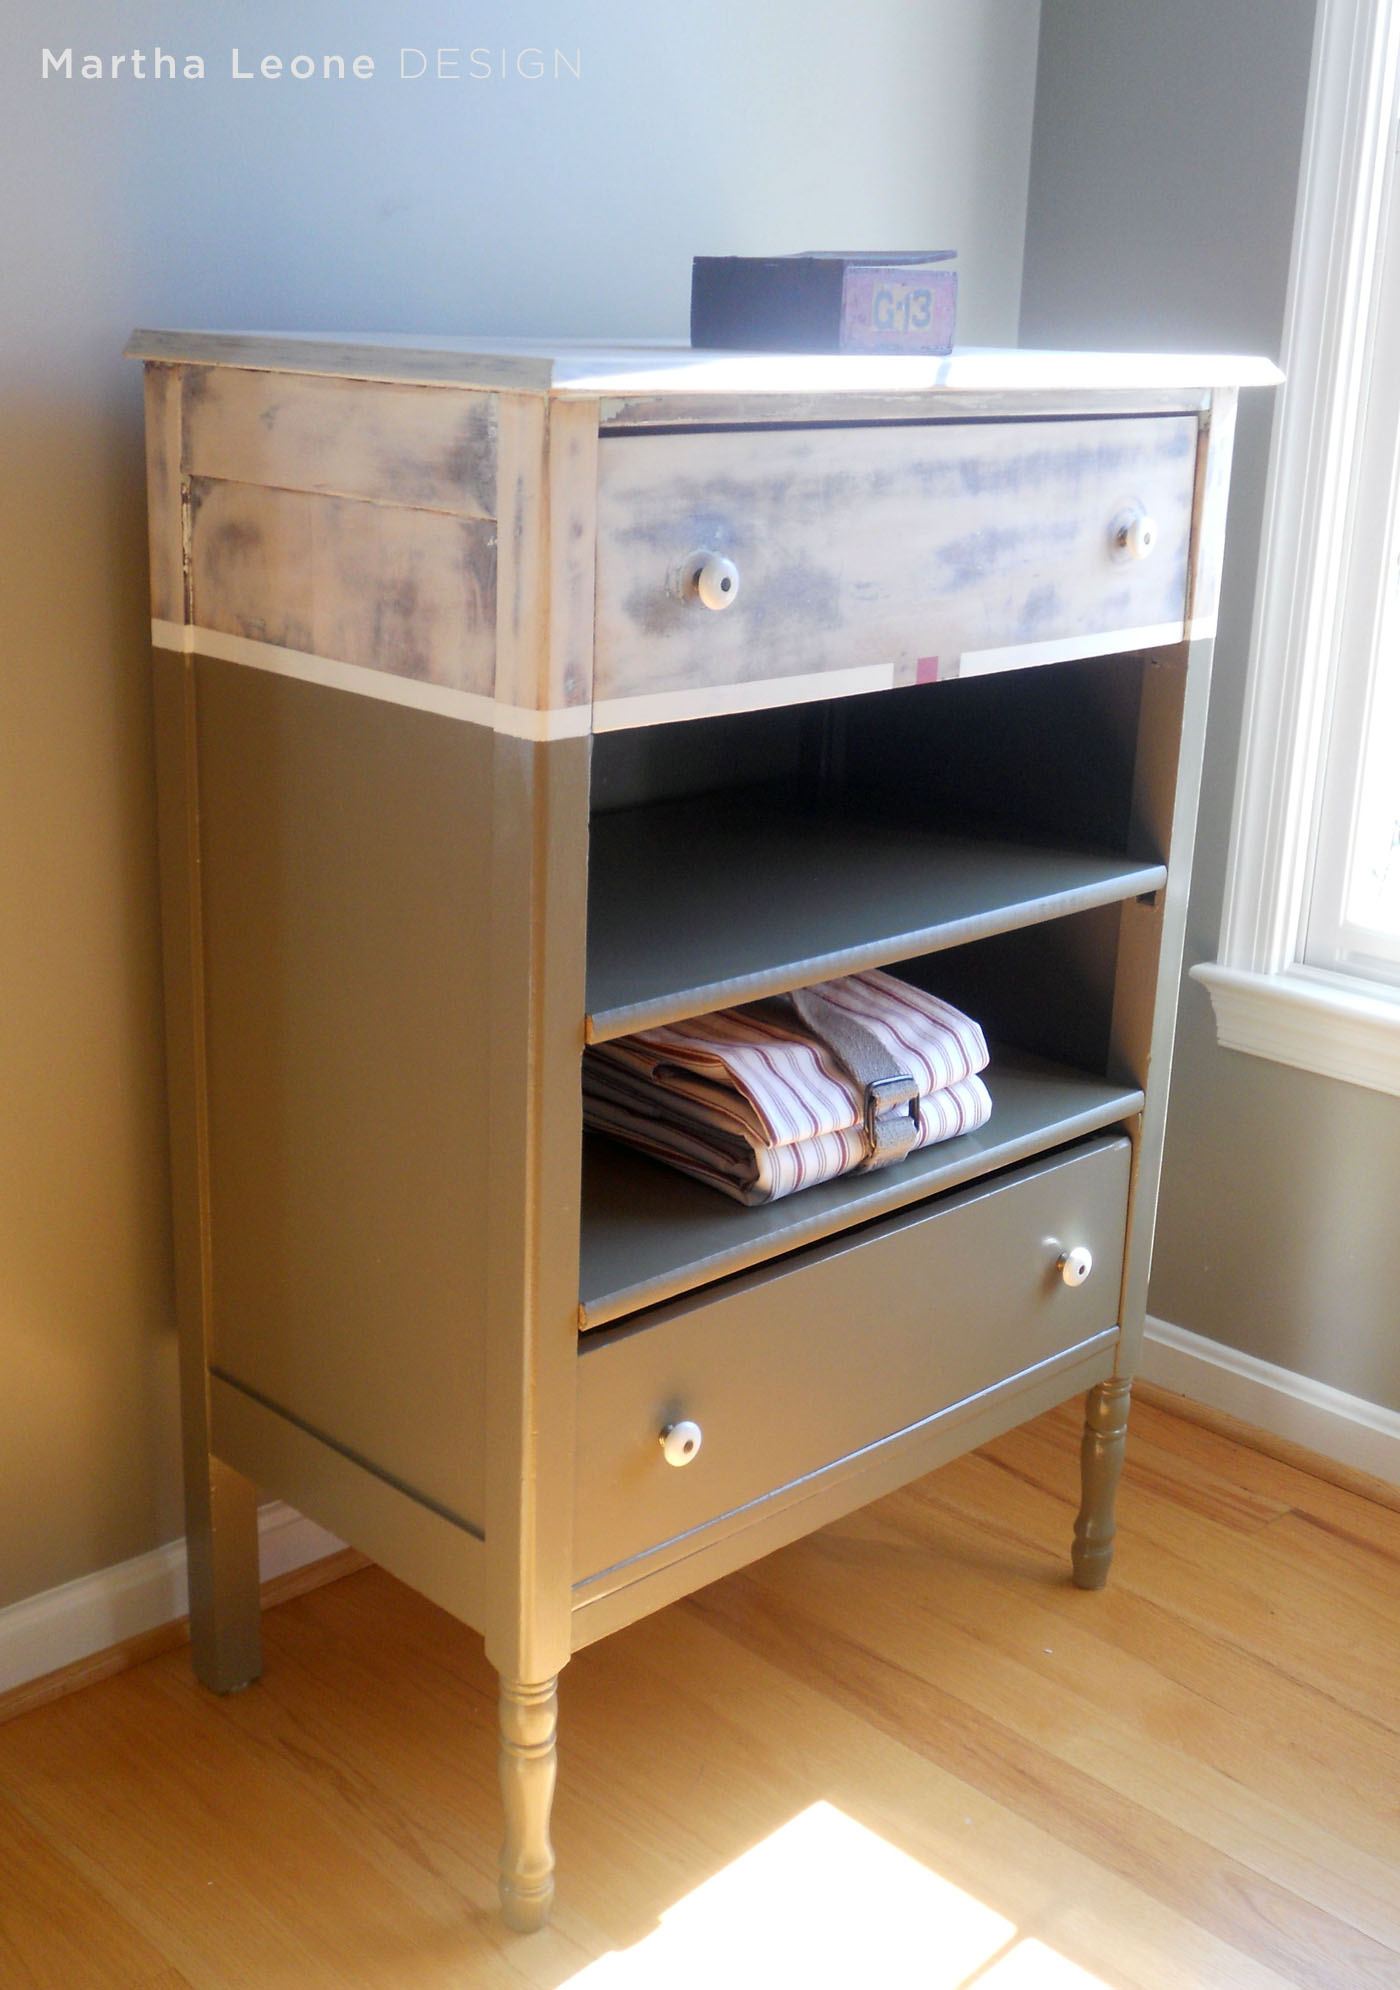 Army Dresser 6 at MarthaLeoneDesign